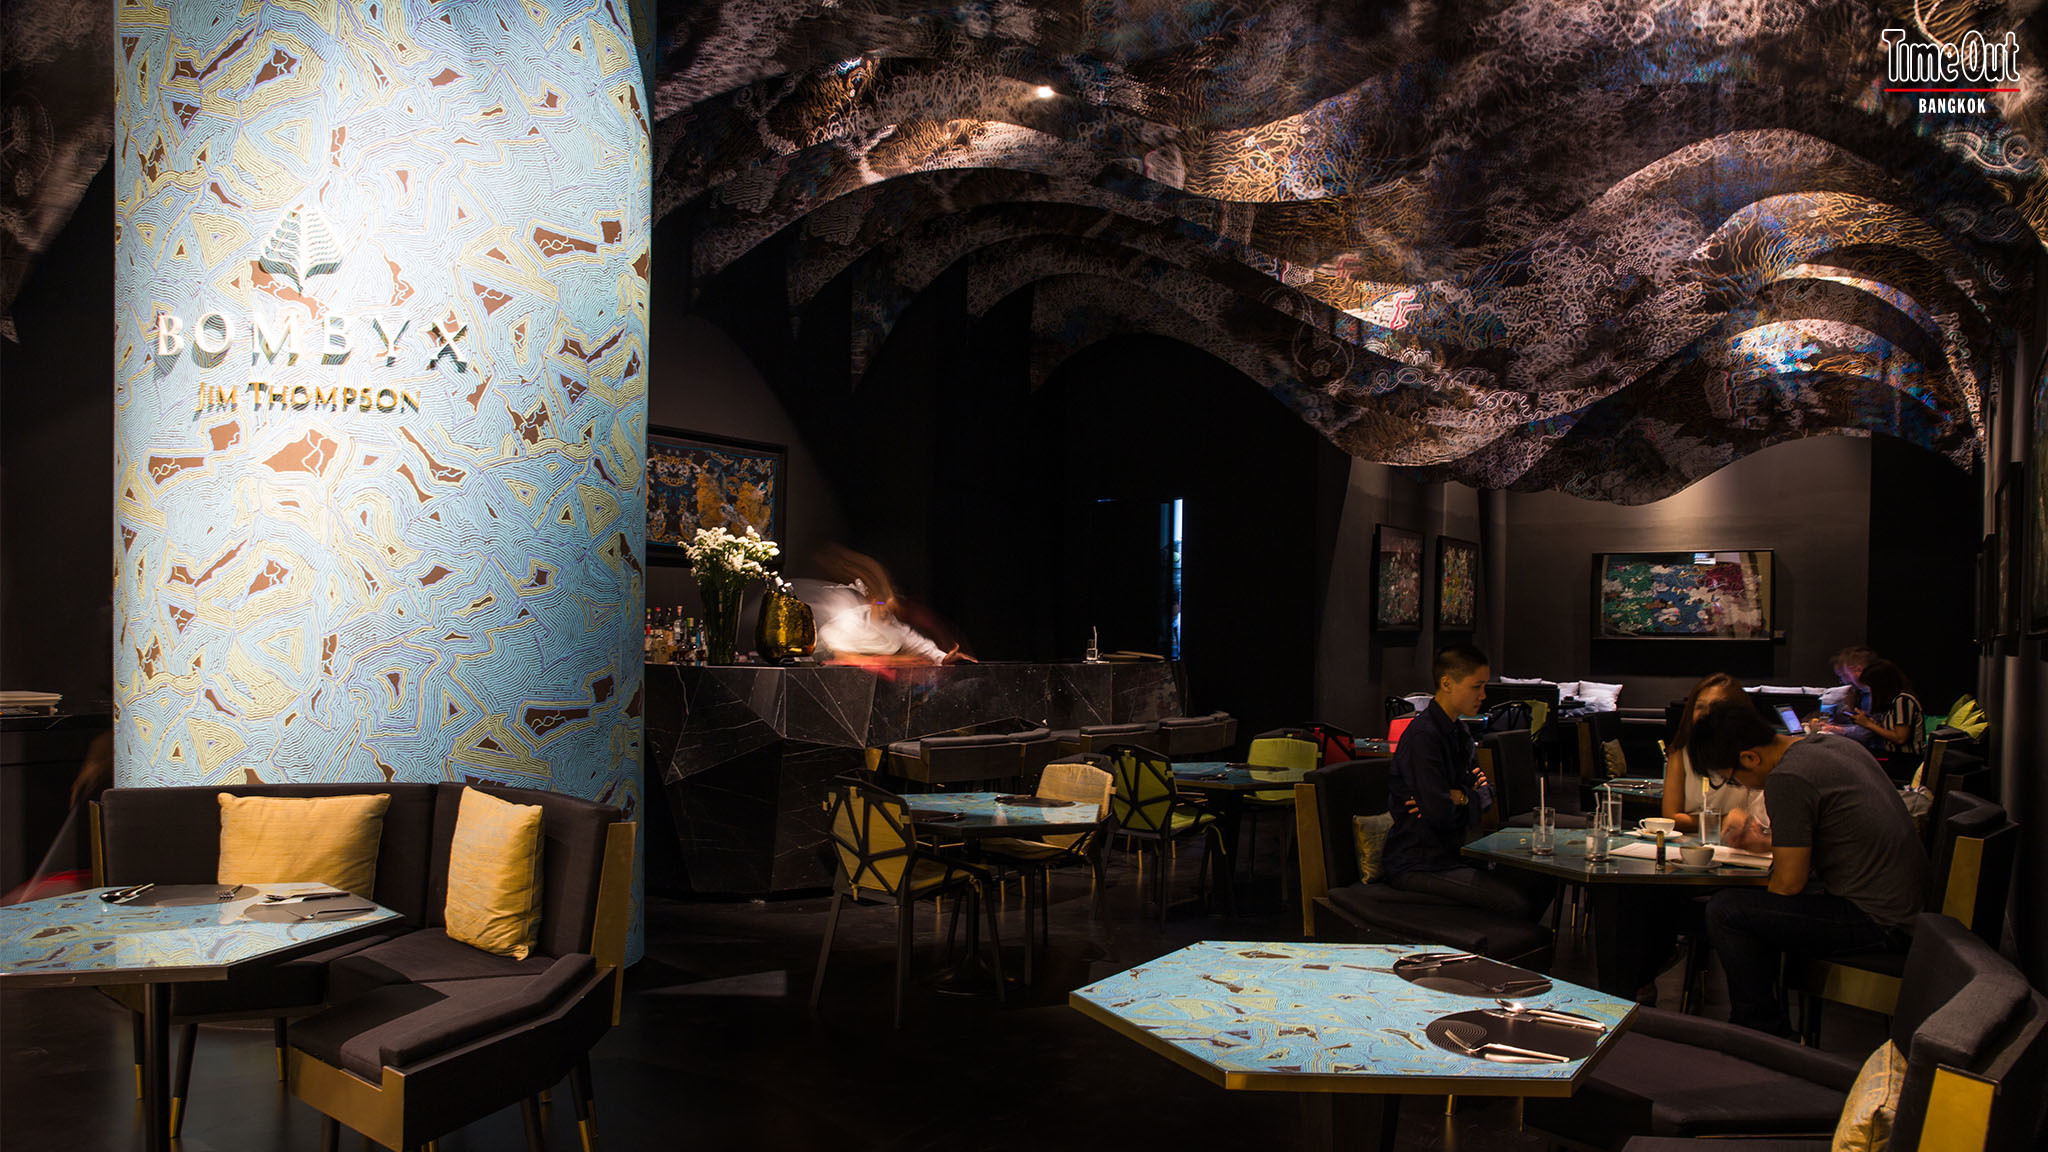 Bombyx, the latest dining outpost of silk conglomerate Jim Thompson